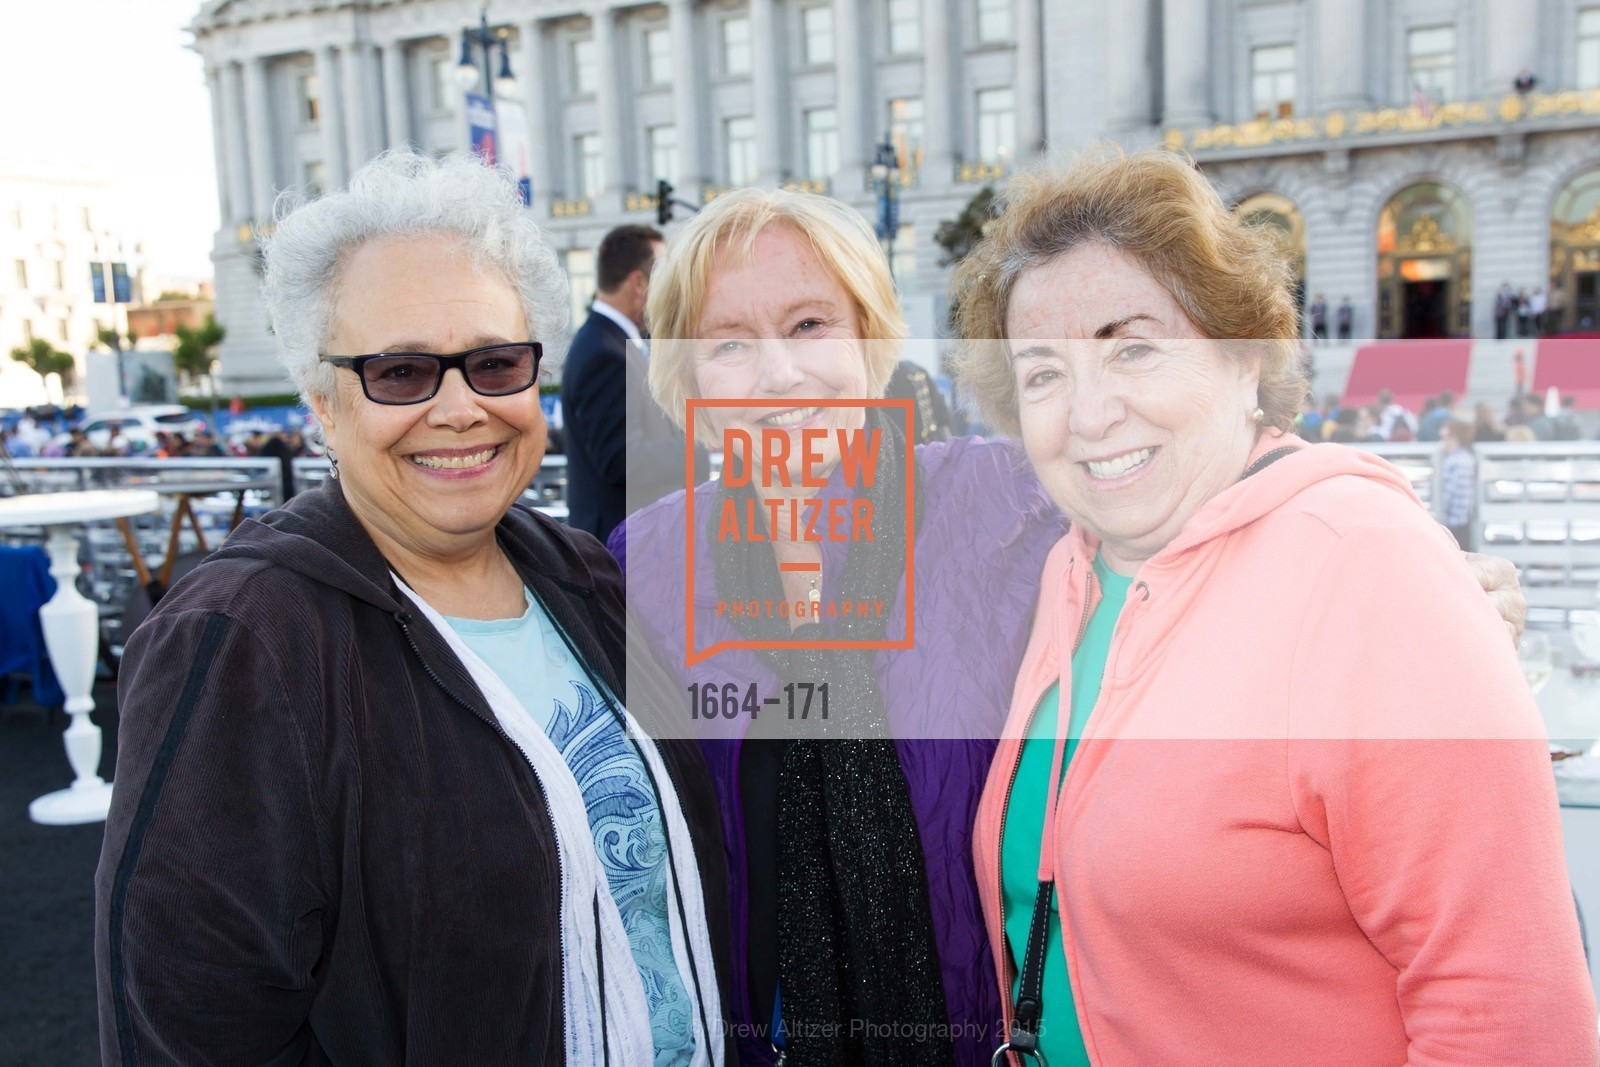 Maria Little, Connie Roos, Jean Fisher, San Francisco City Hall Centennial Celebration, Civic Center Plaza, June 18th, 2015,Drew Altizer, Drew Altizer Photography, full-service agency, private events, San Francisco photographer, photographer california